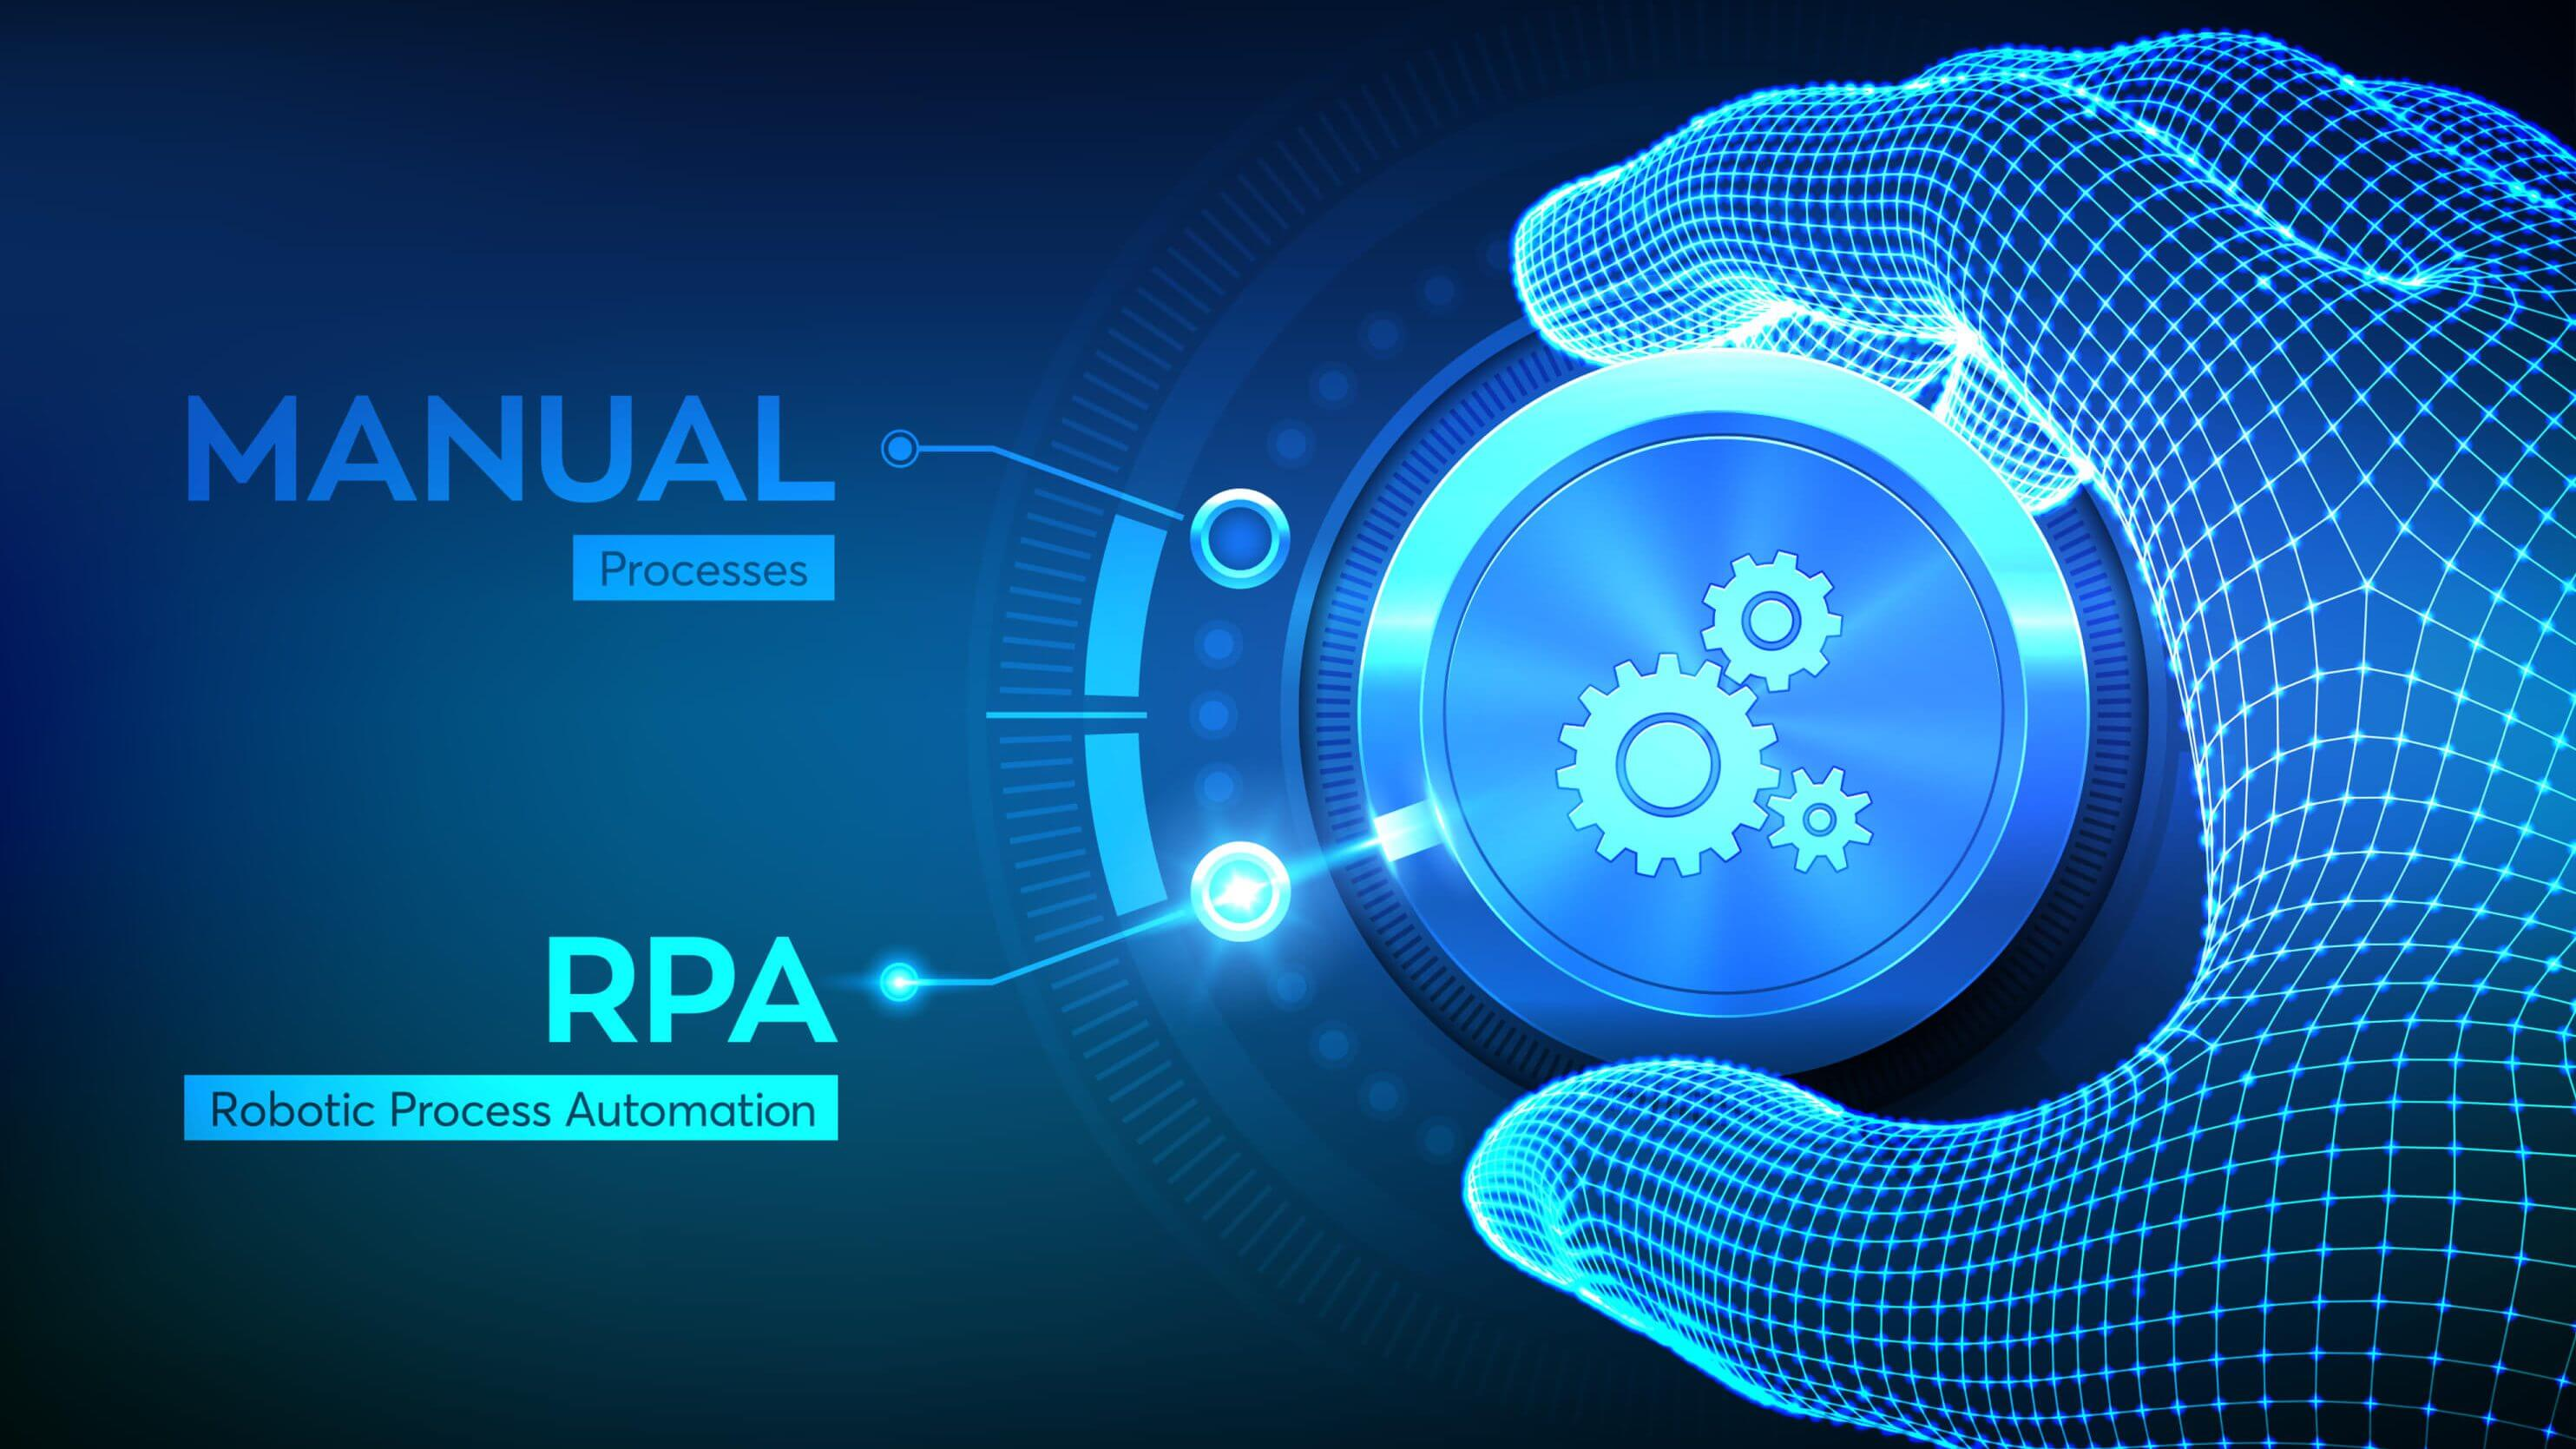 2018: Is this the year when RPA will finally deliver corporate value?